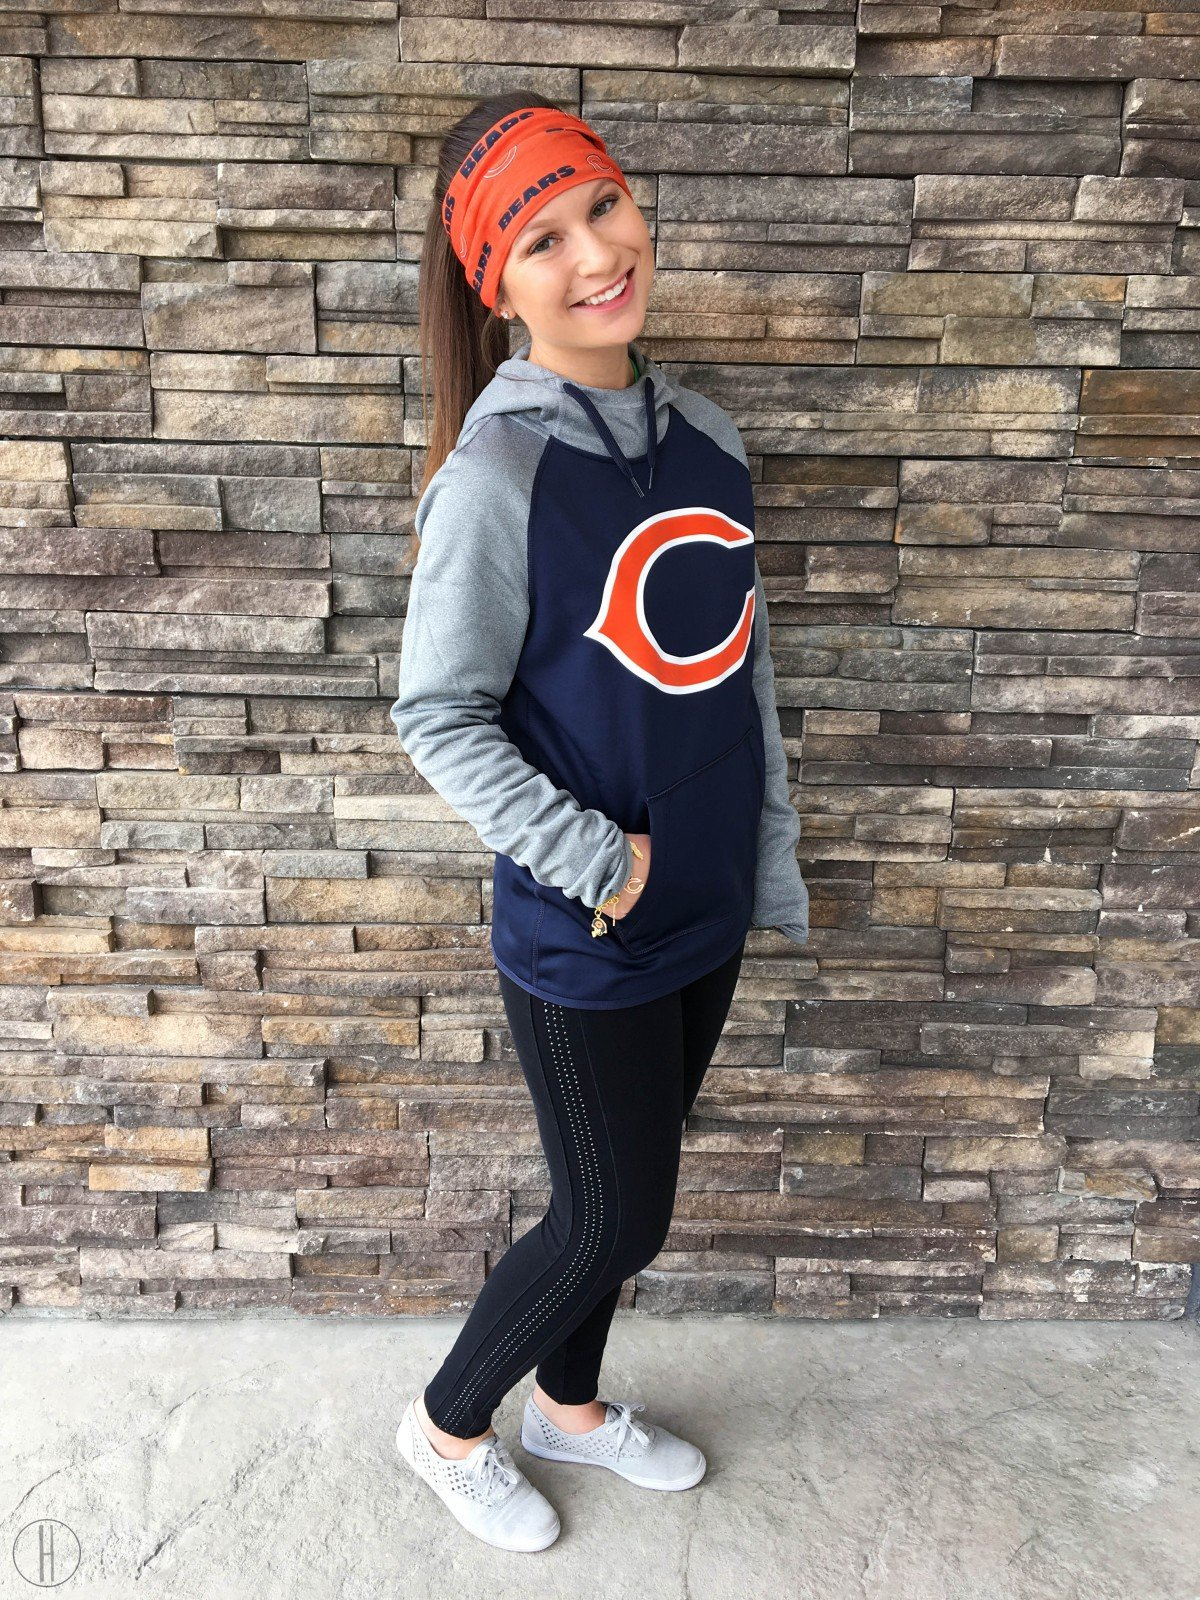 Fashionable at a Football Game | NFL Bears | hayle santella | www.haylesantella.com